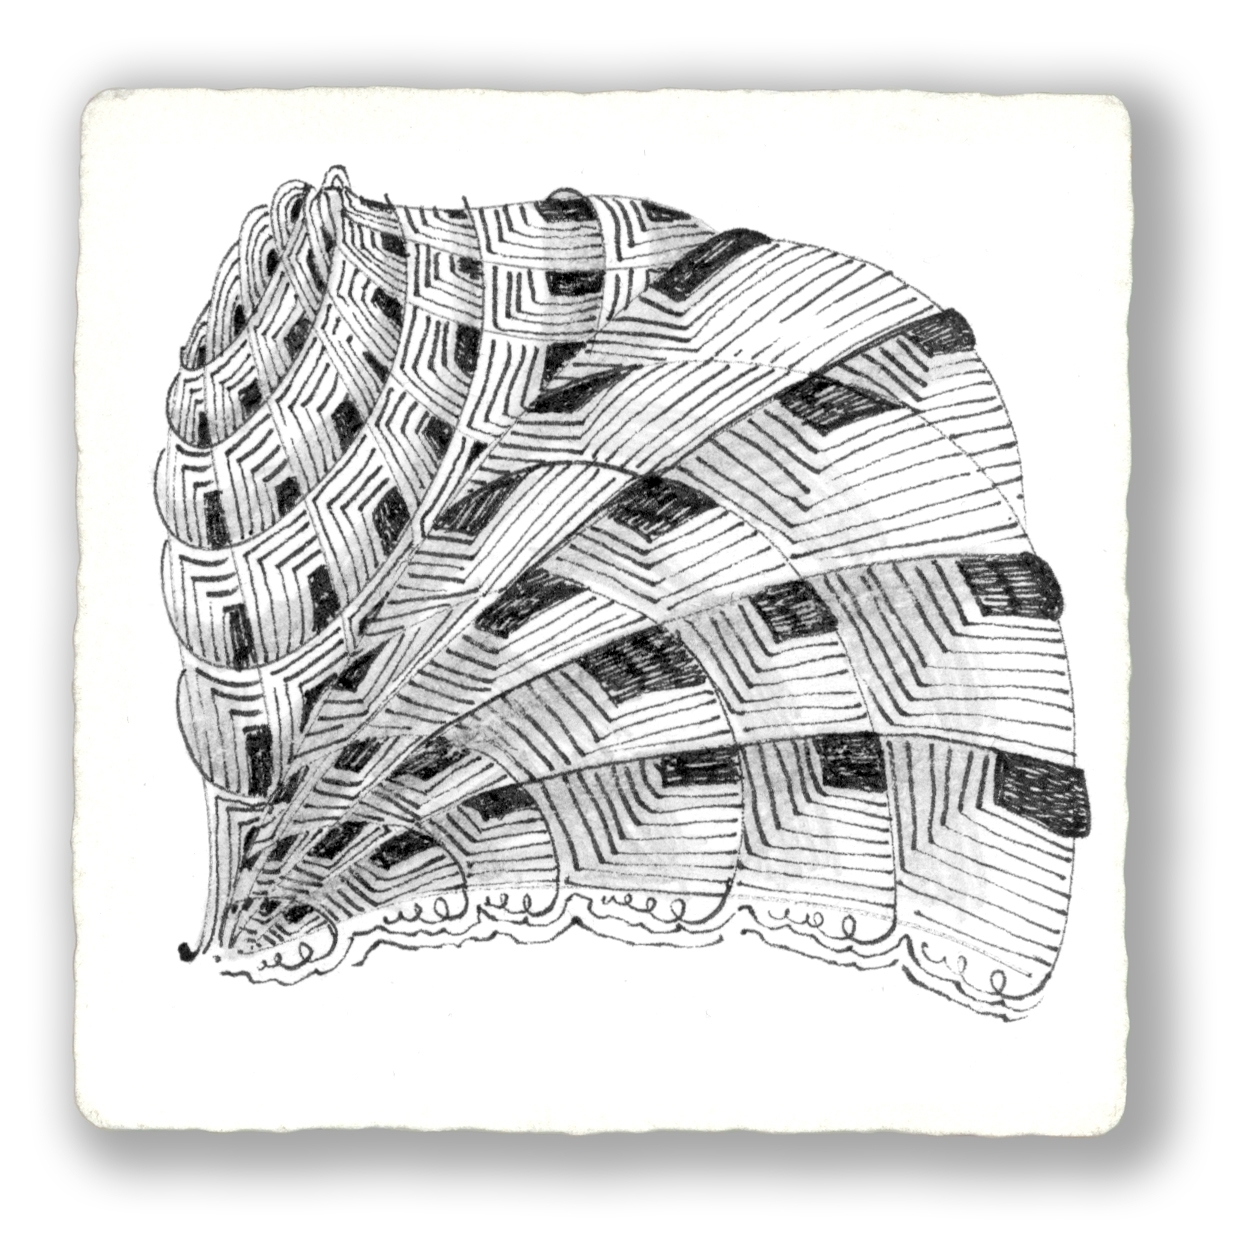 Zentangle image C 12 07.JPG